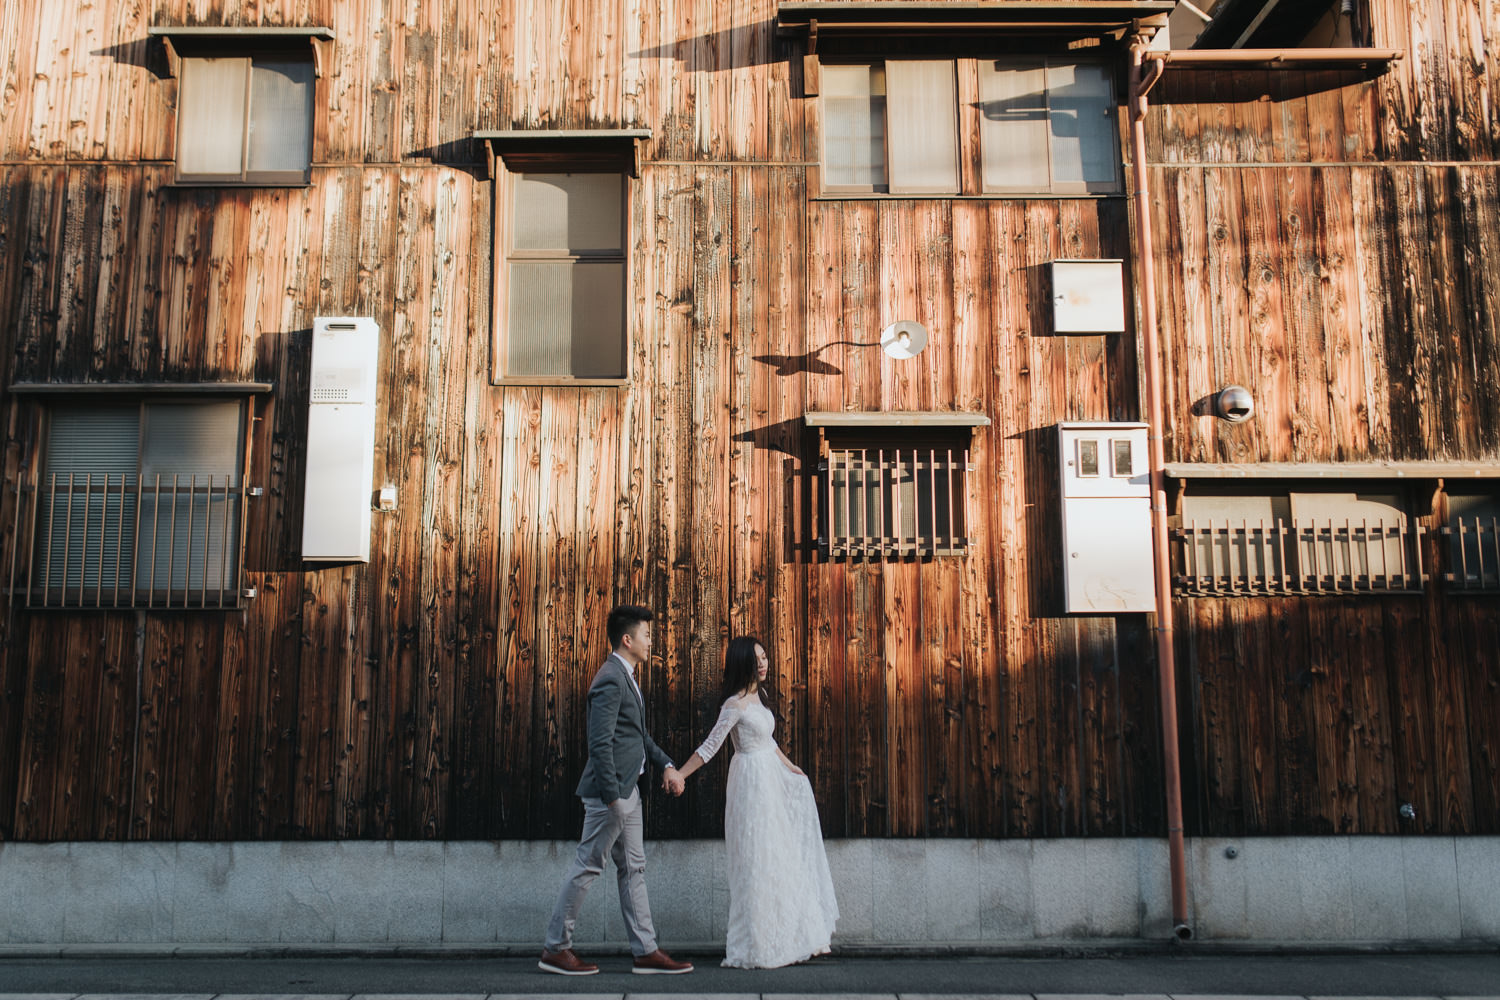 Japan Destination Wedding Photographer at Gion district in Kyoto